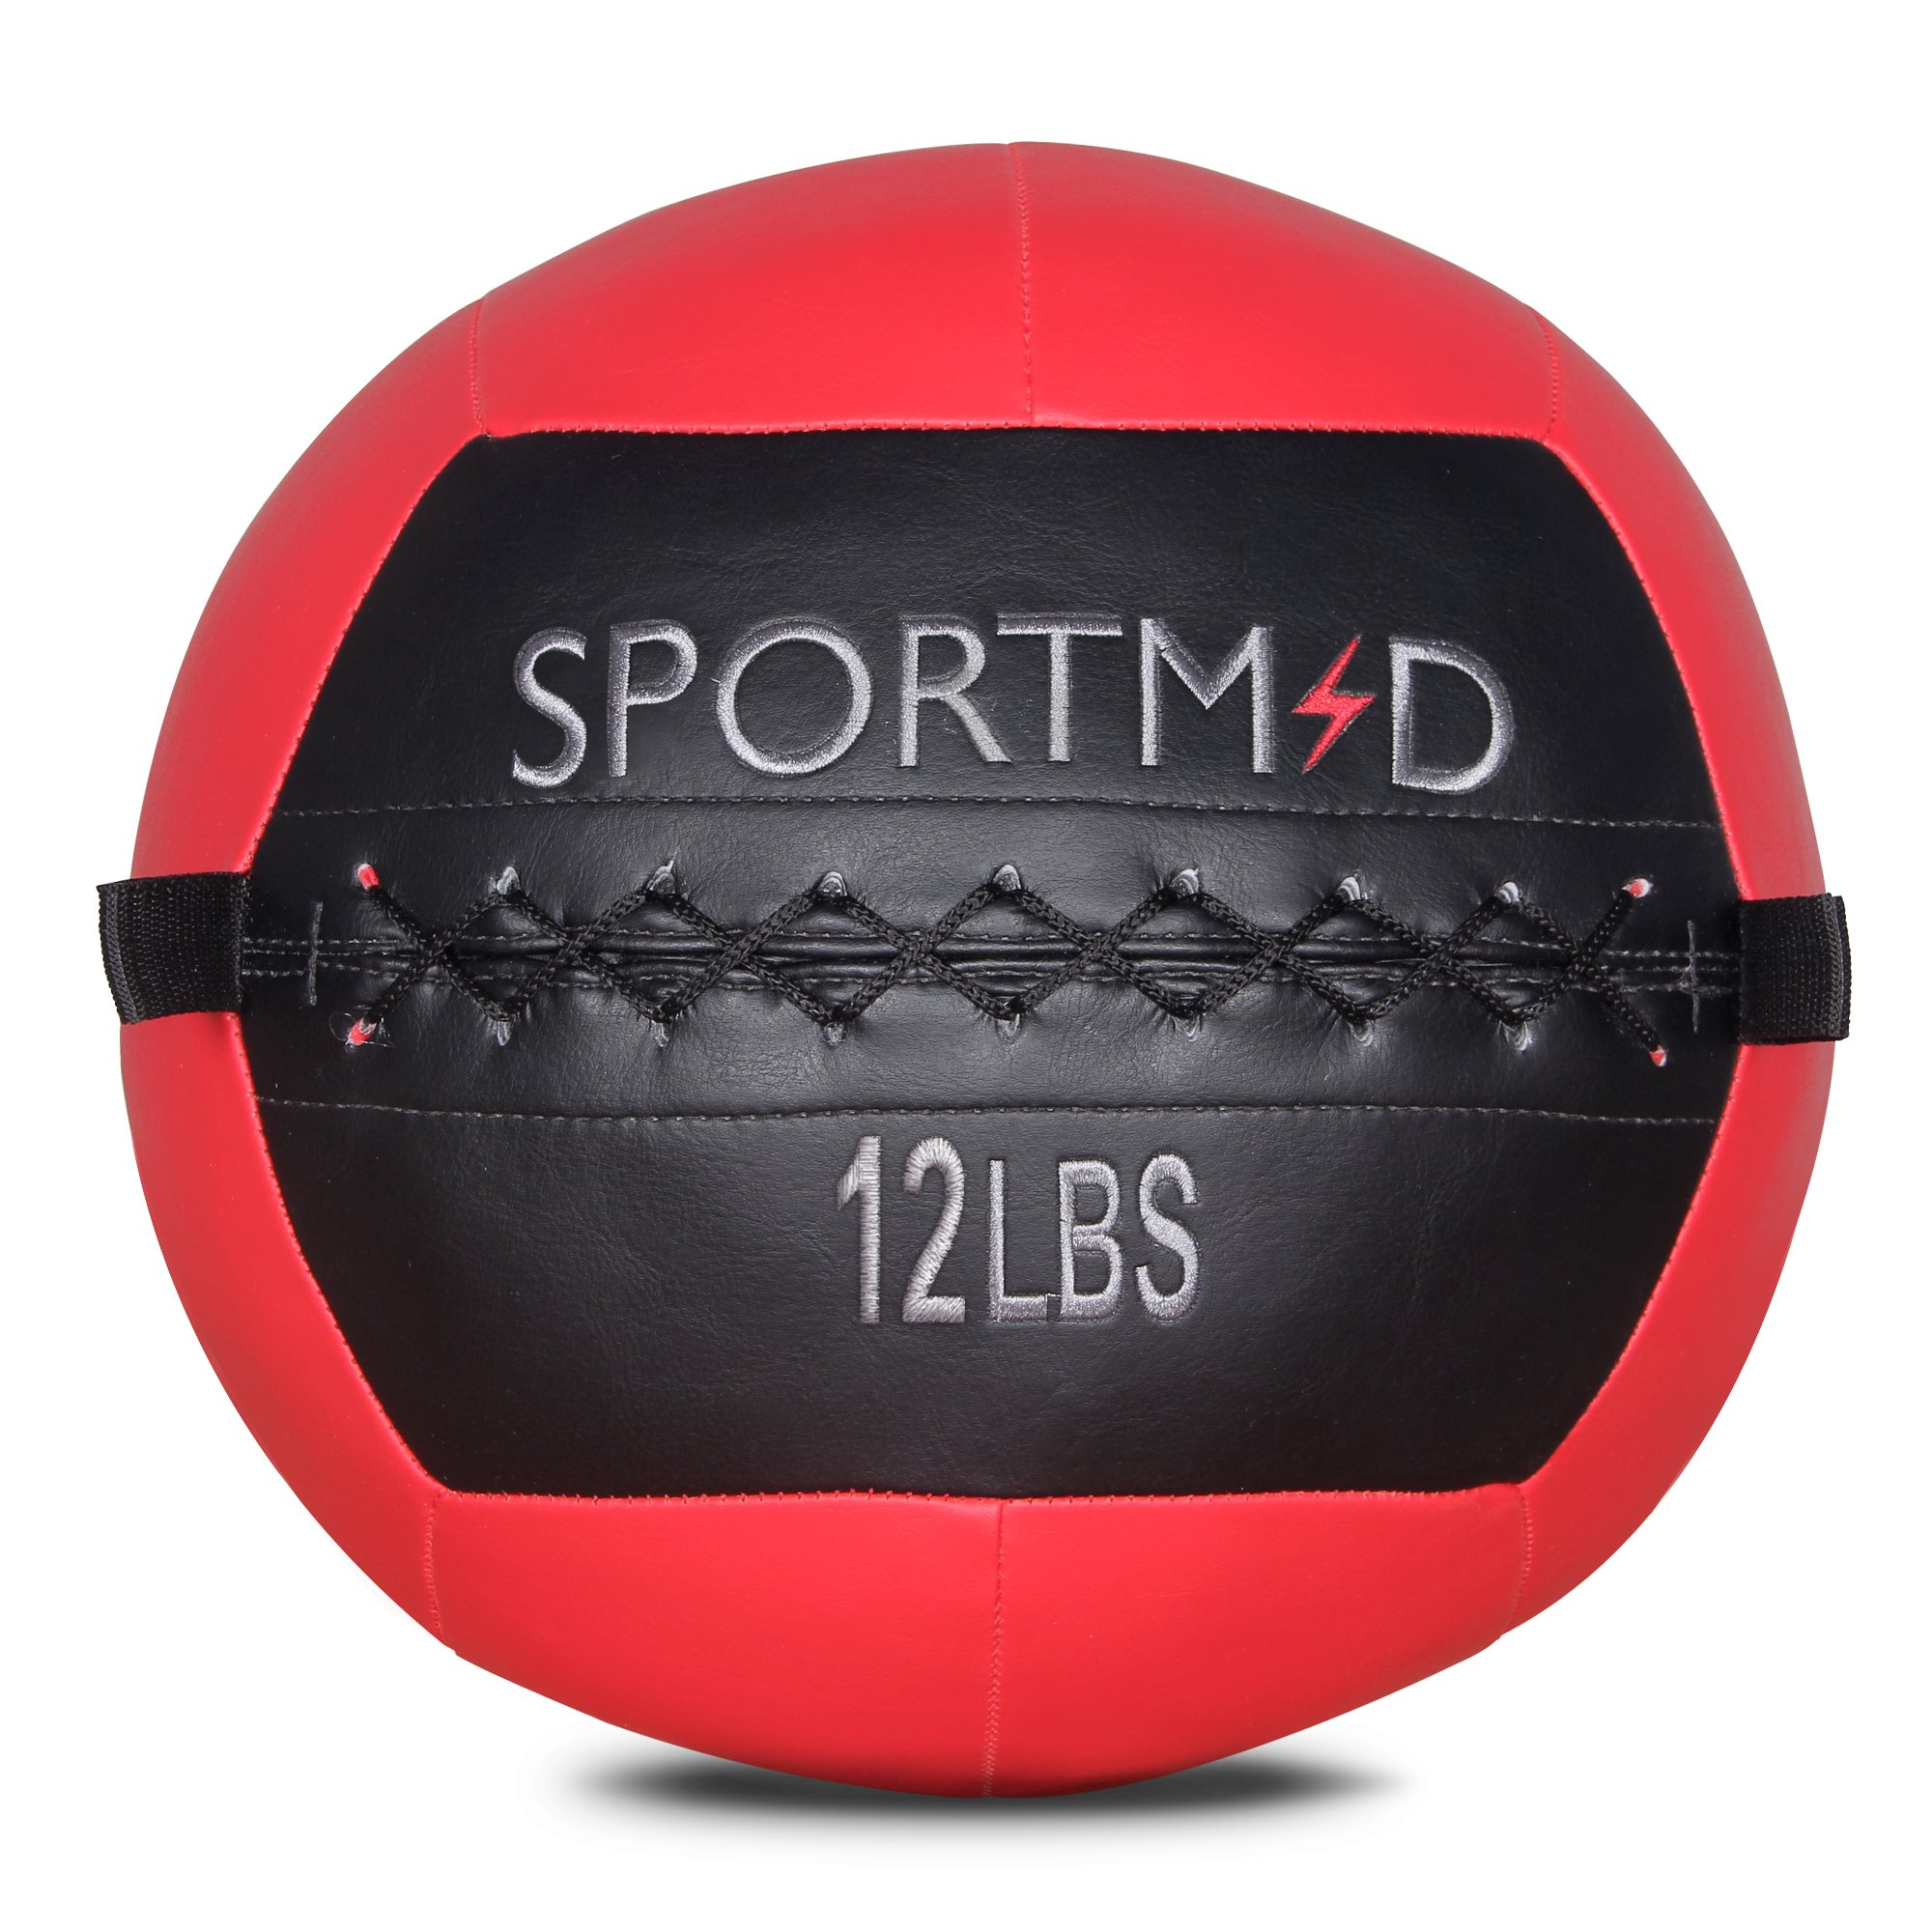 Sportmad Soft Medicine Ball Wall Ball for CrossFit Exercises Strength Training Cardio Workouts Muscle Building Balance Red 12 LBS